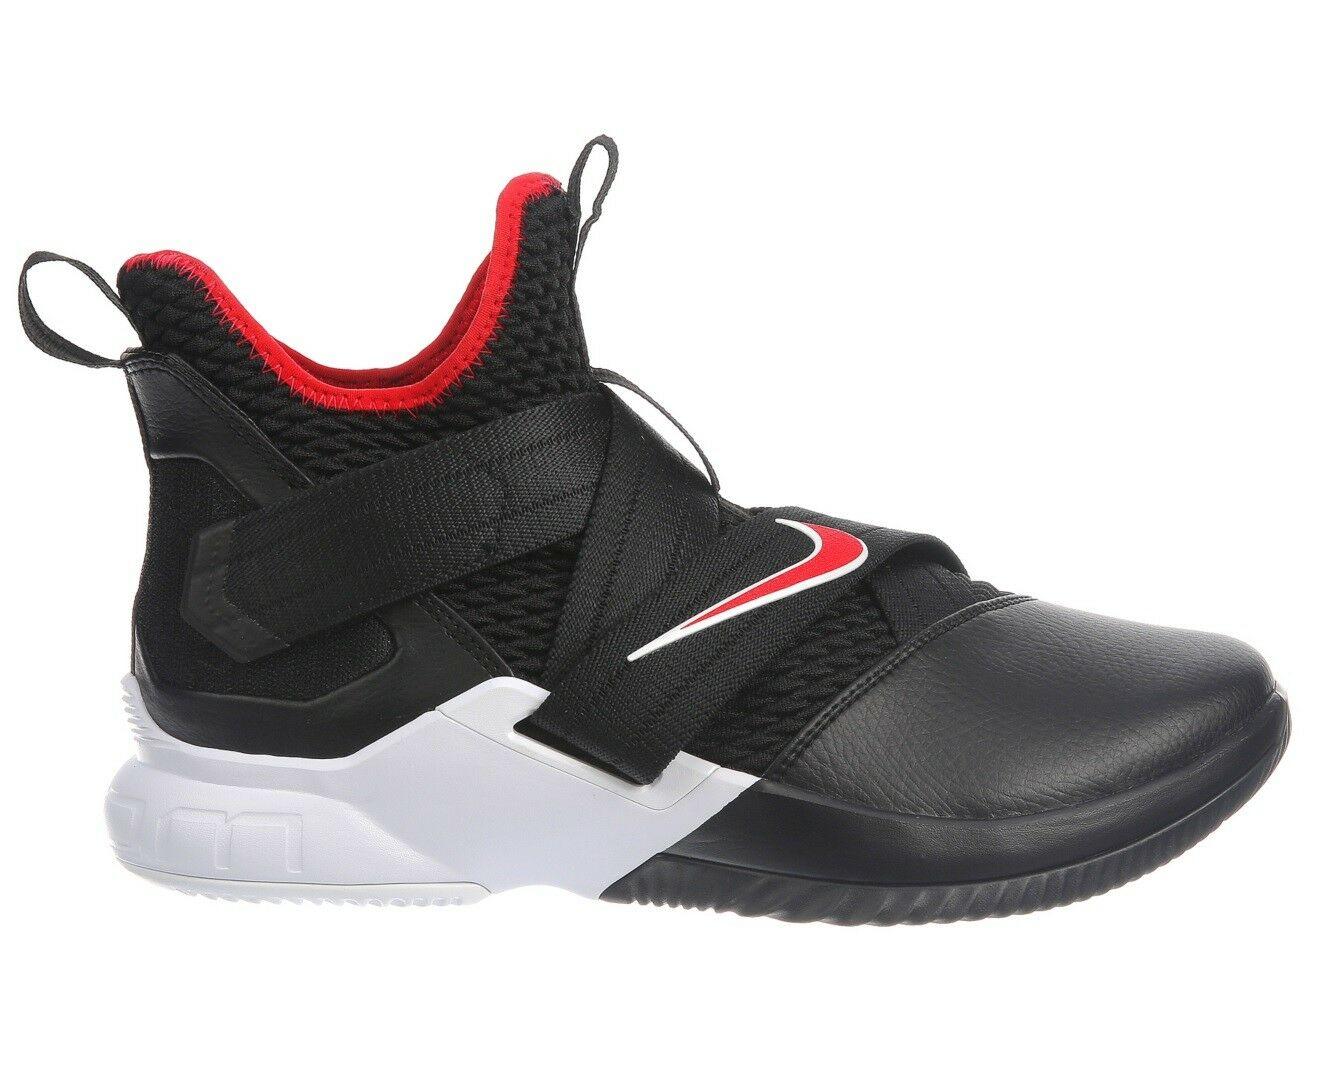 Nike Lebron Soldier 12 Bred Mens AO2609-001 Black Red Basketball Shoes Size 8